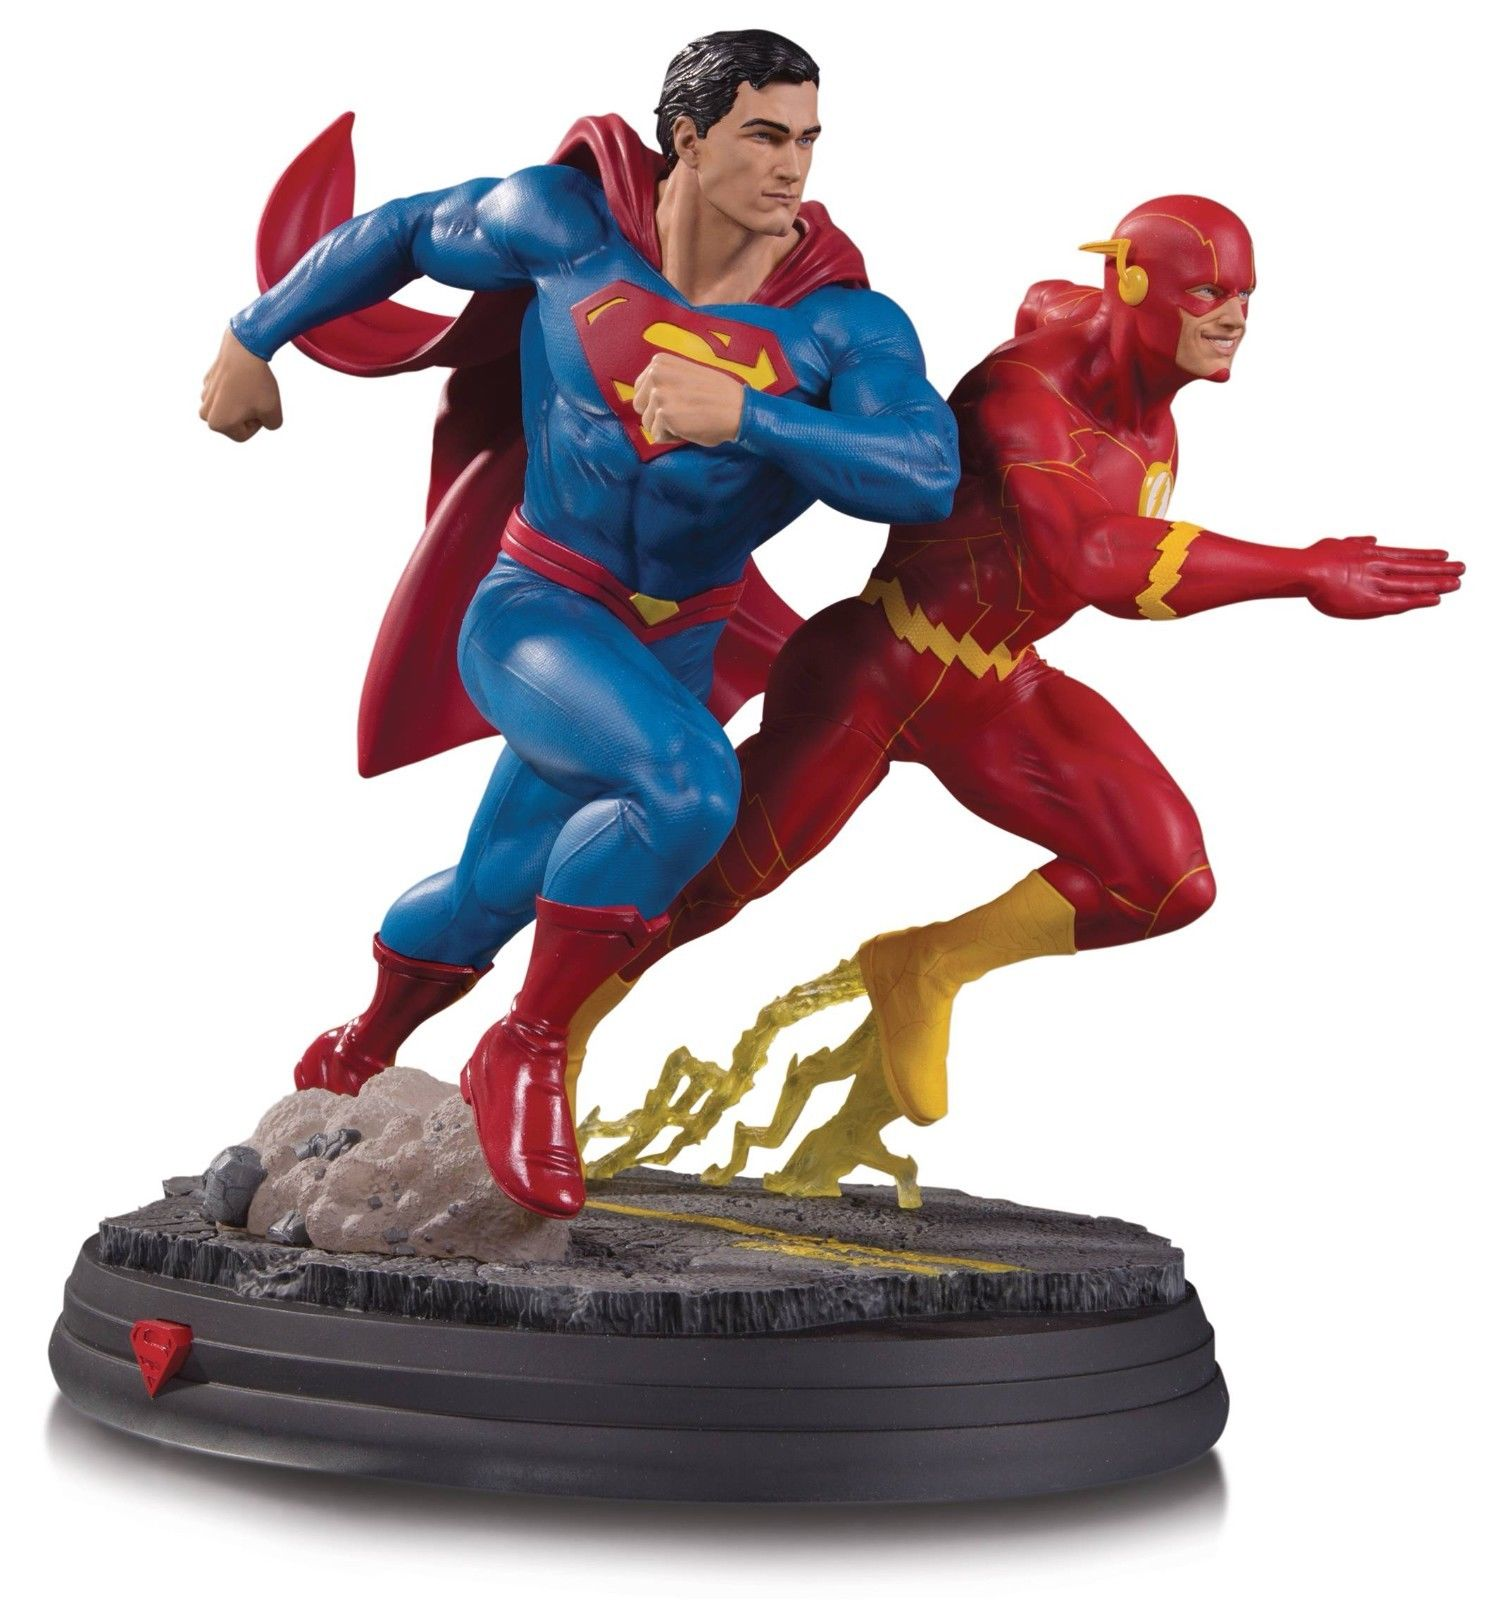 DC Direct Gallery Superman vs The Flash Racing Statue